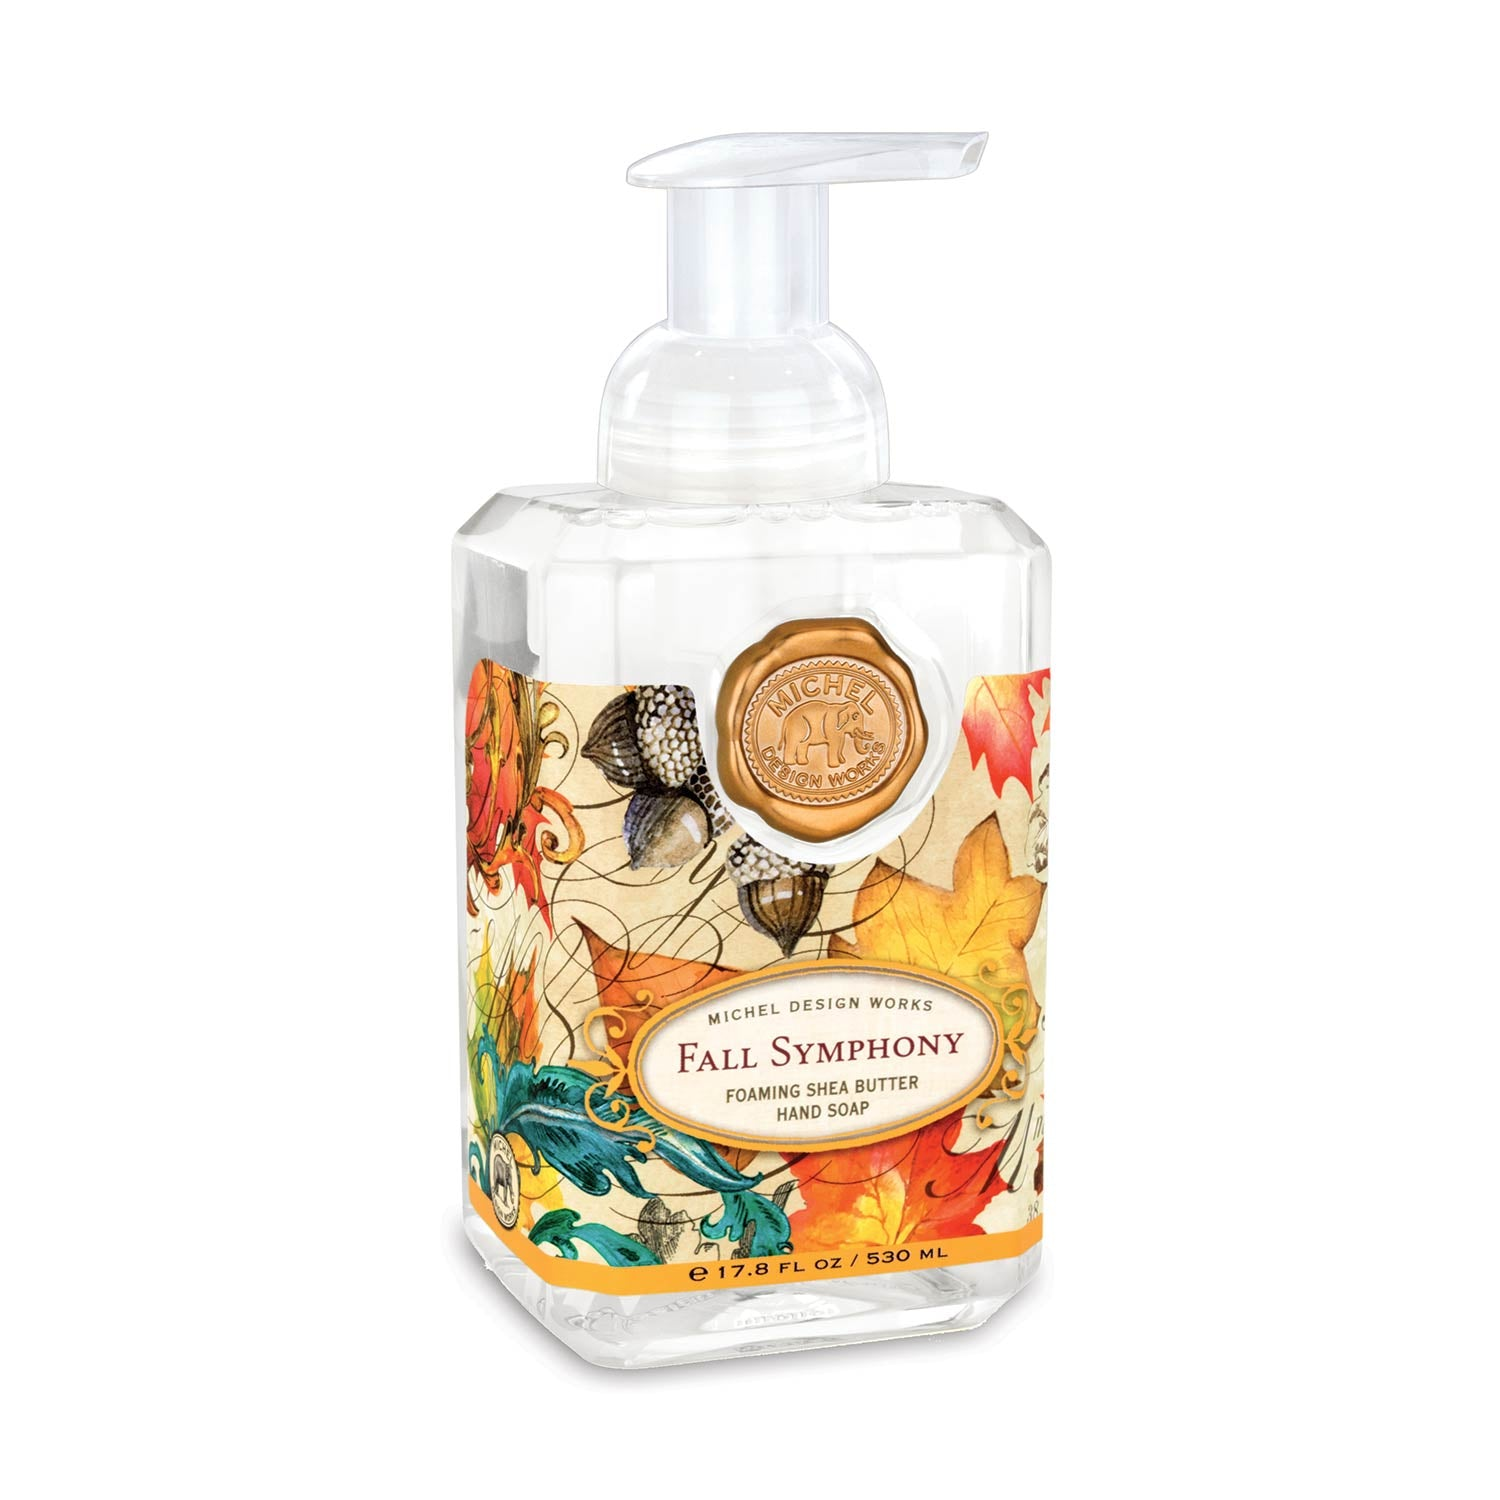 Michel Design Works Fall Symphony Foaming Hand Soap